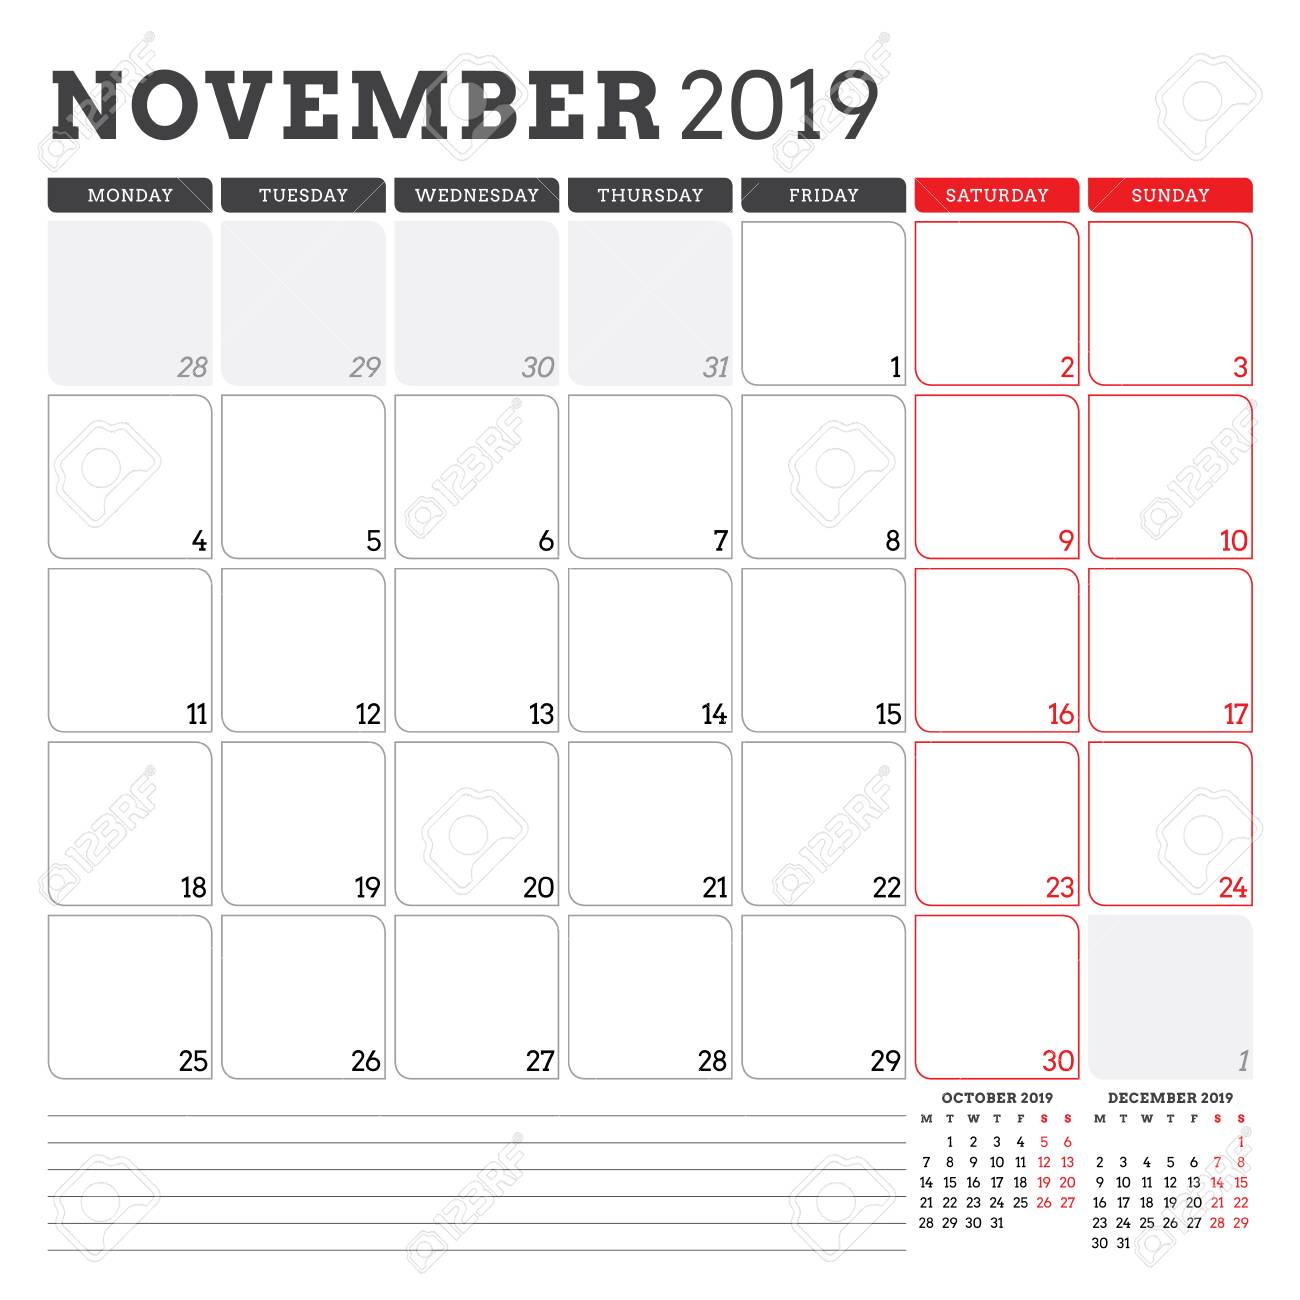 Calendar Planner For November 2019 Week Starts On Monday Printable